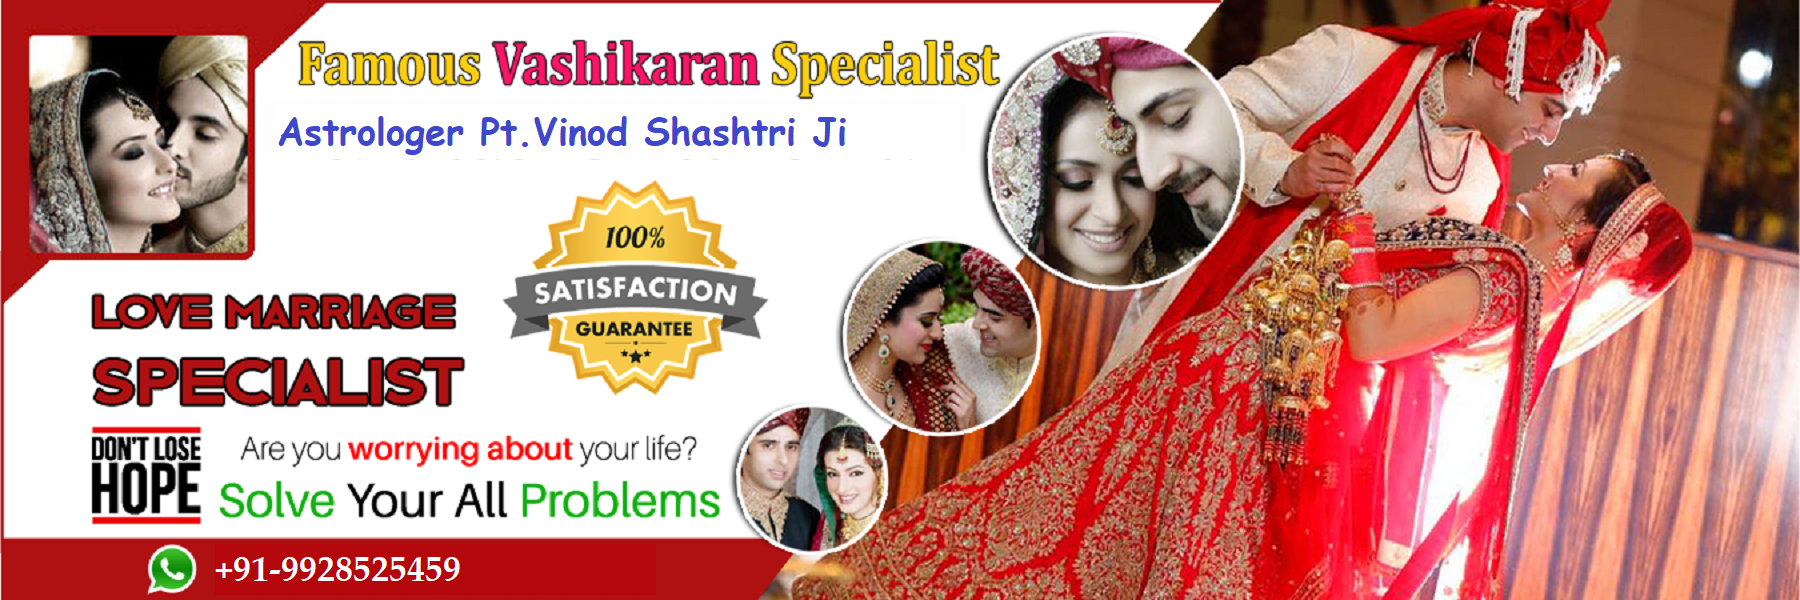 Genuine & Real Vashikaran Specialist Astrologer in India